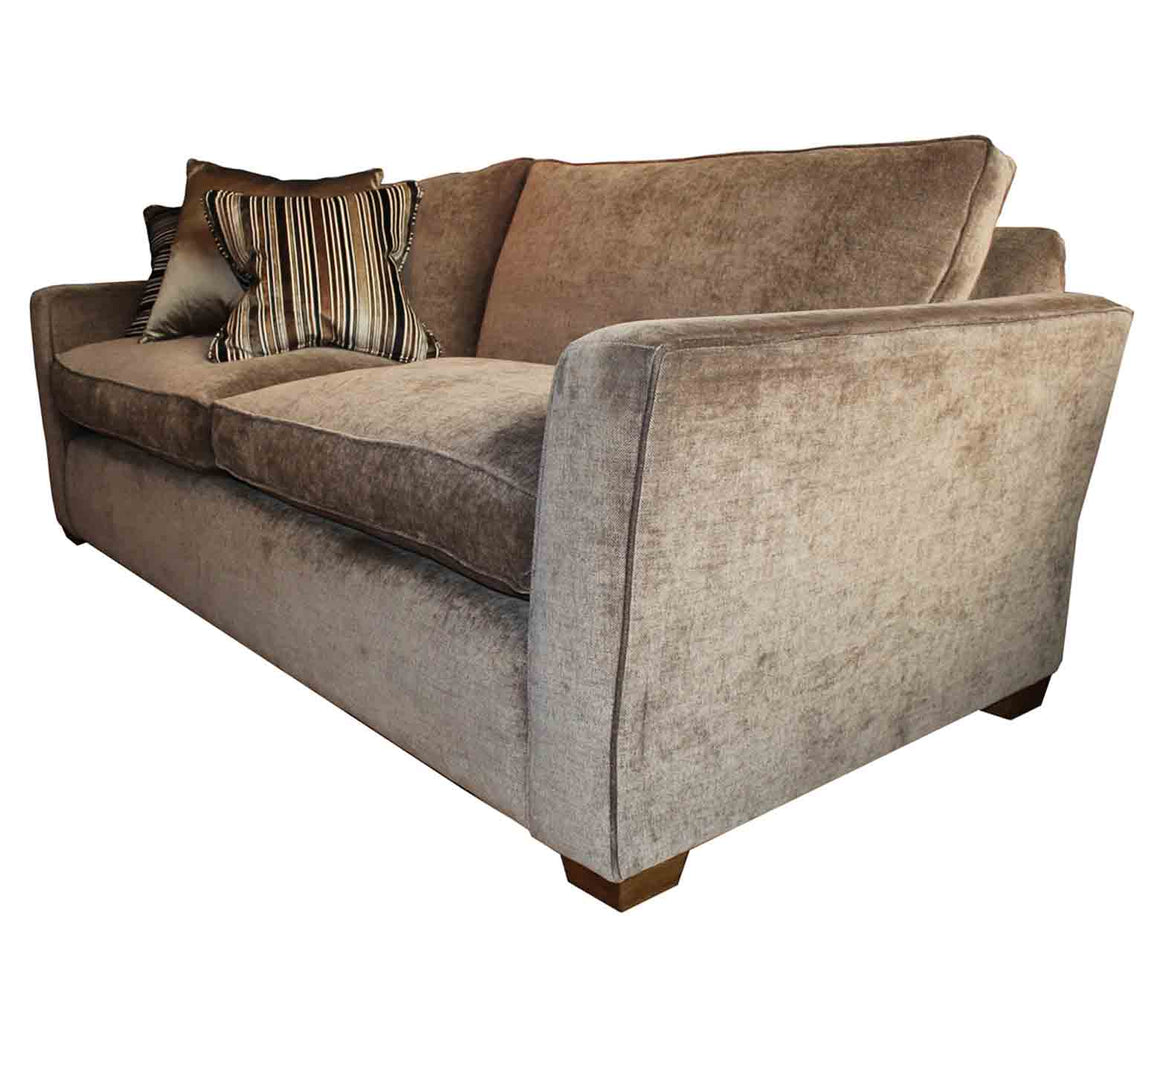 Java sofas and chairs in Warwick Lovely velvet HALF PRICE TO ORDER